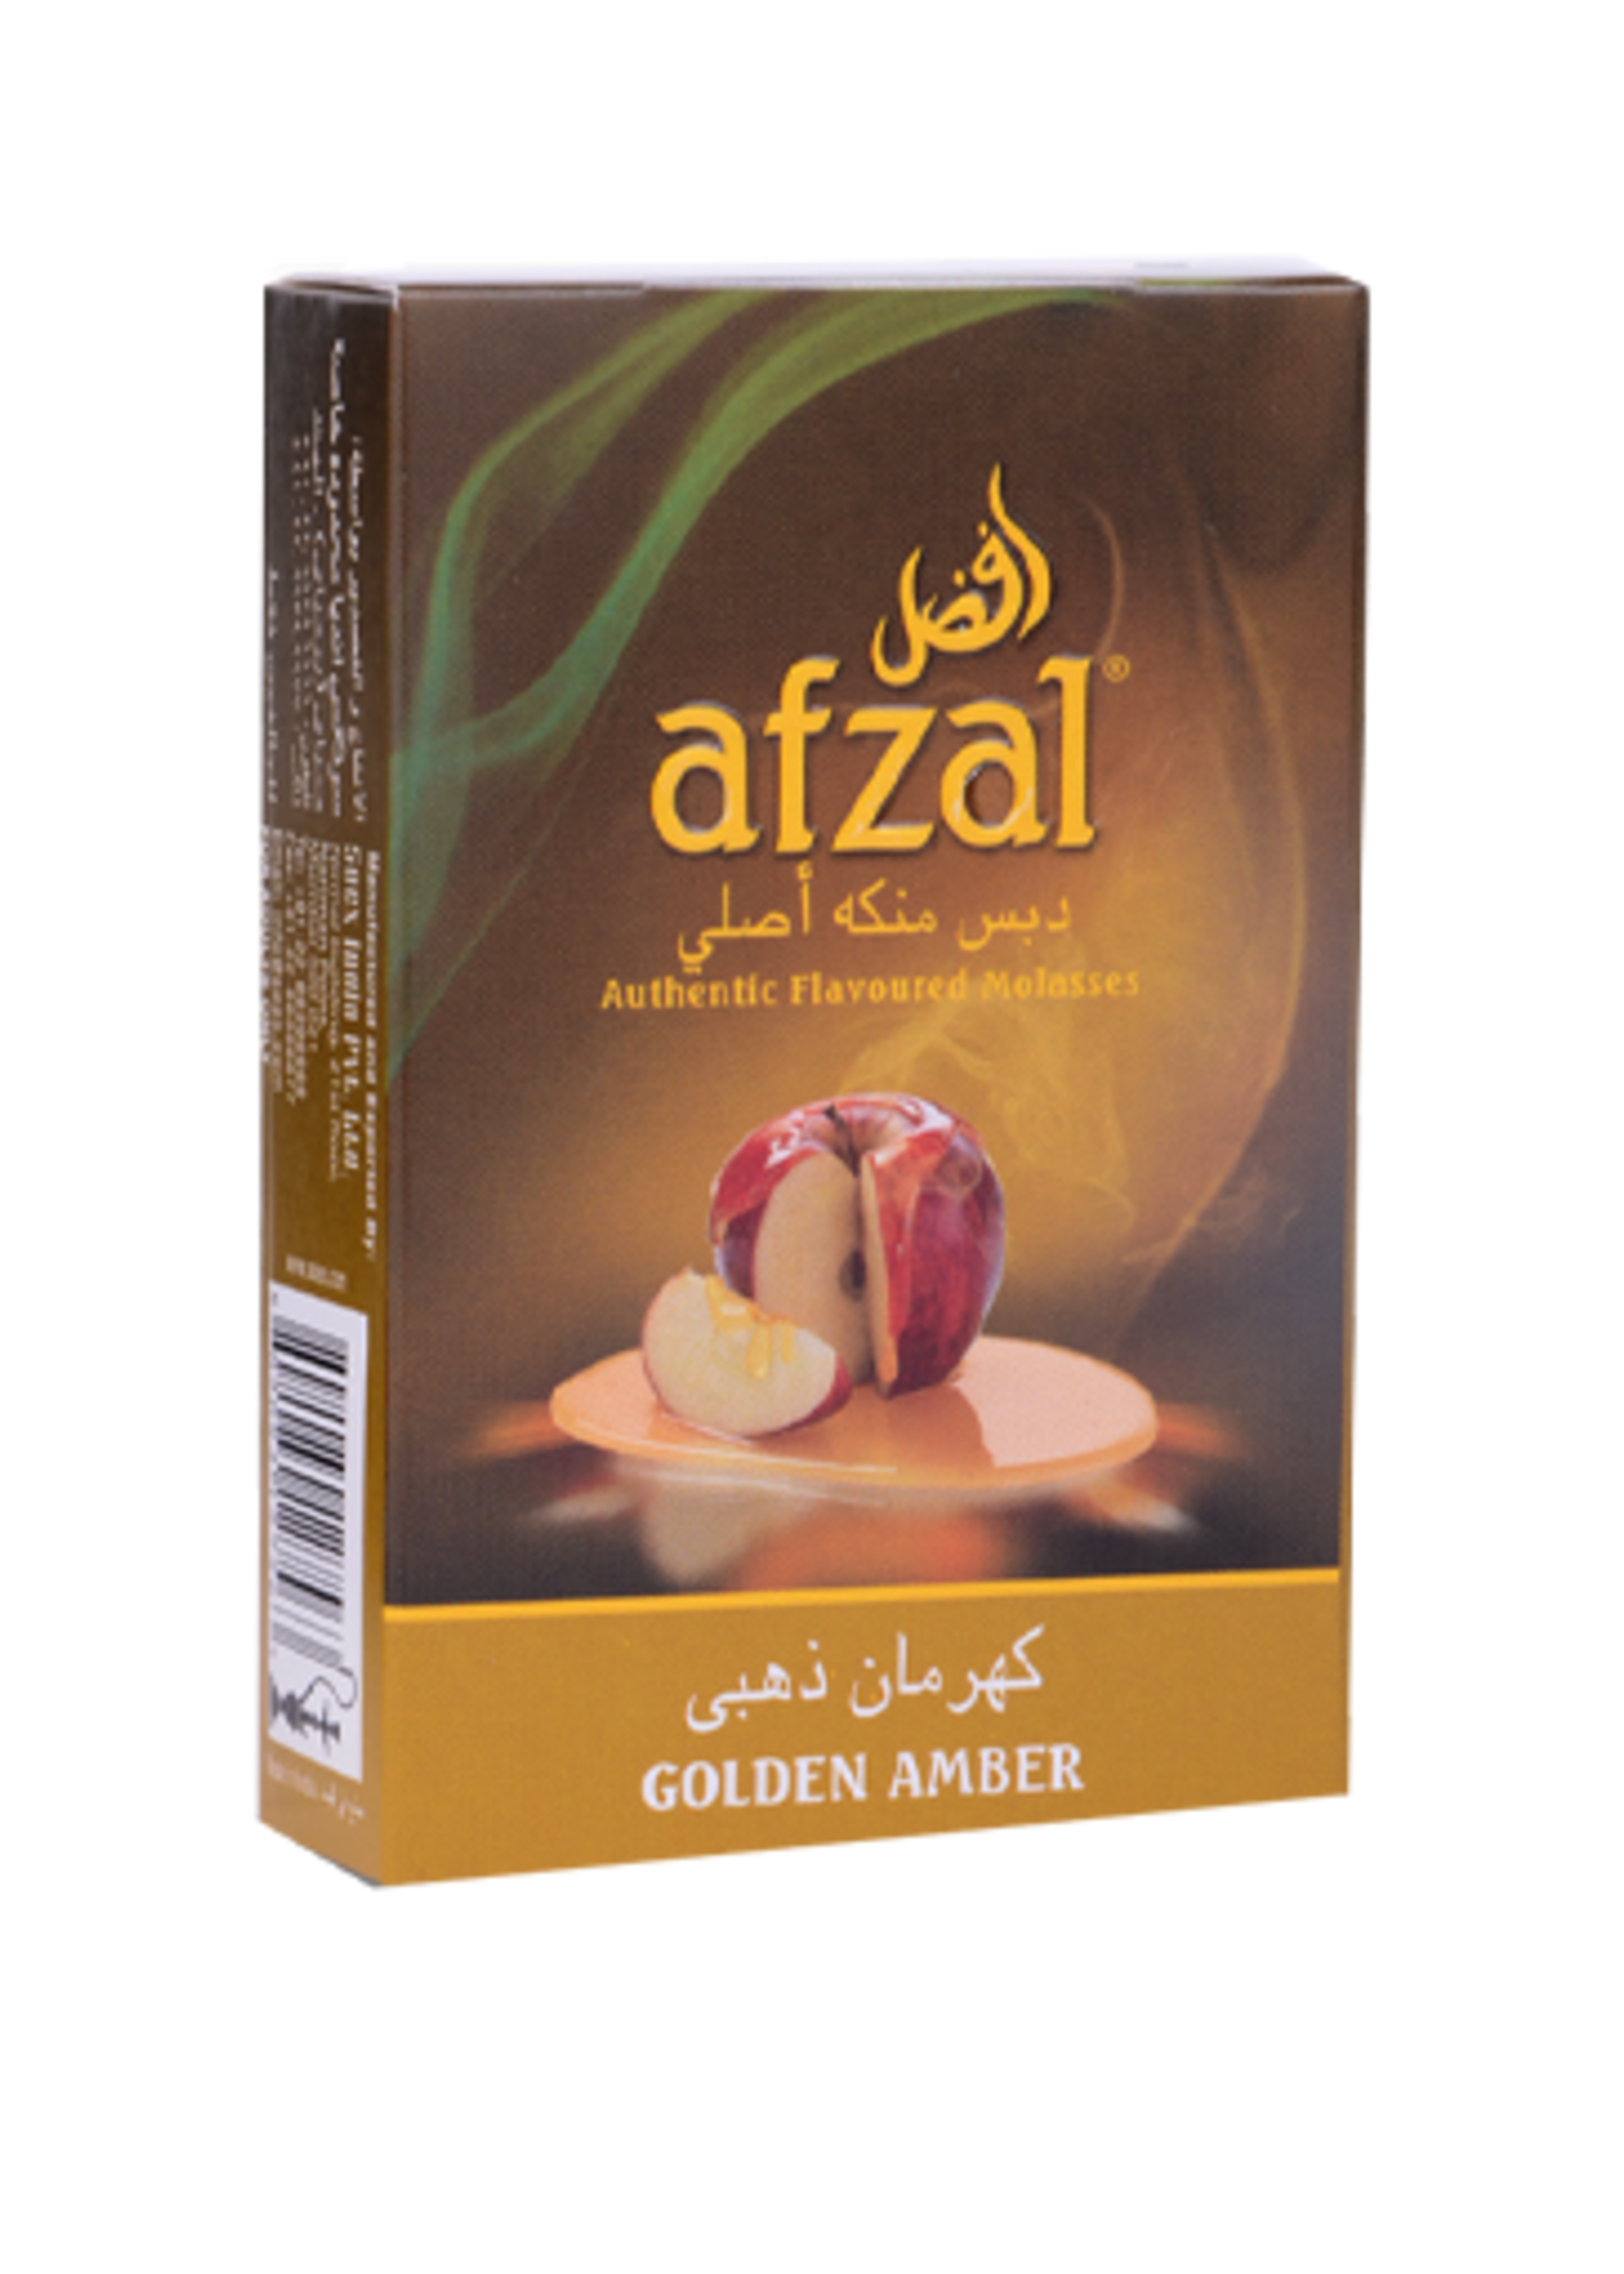 Afzal hubbly flavour - golden amber